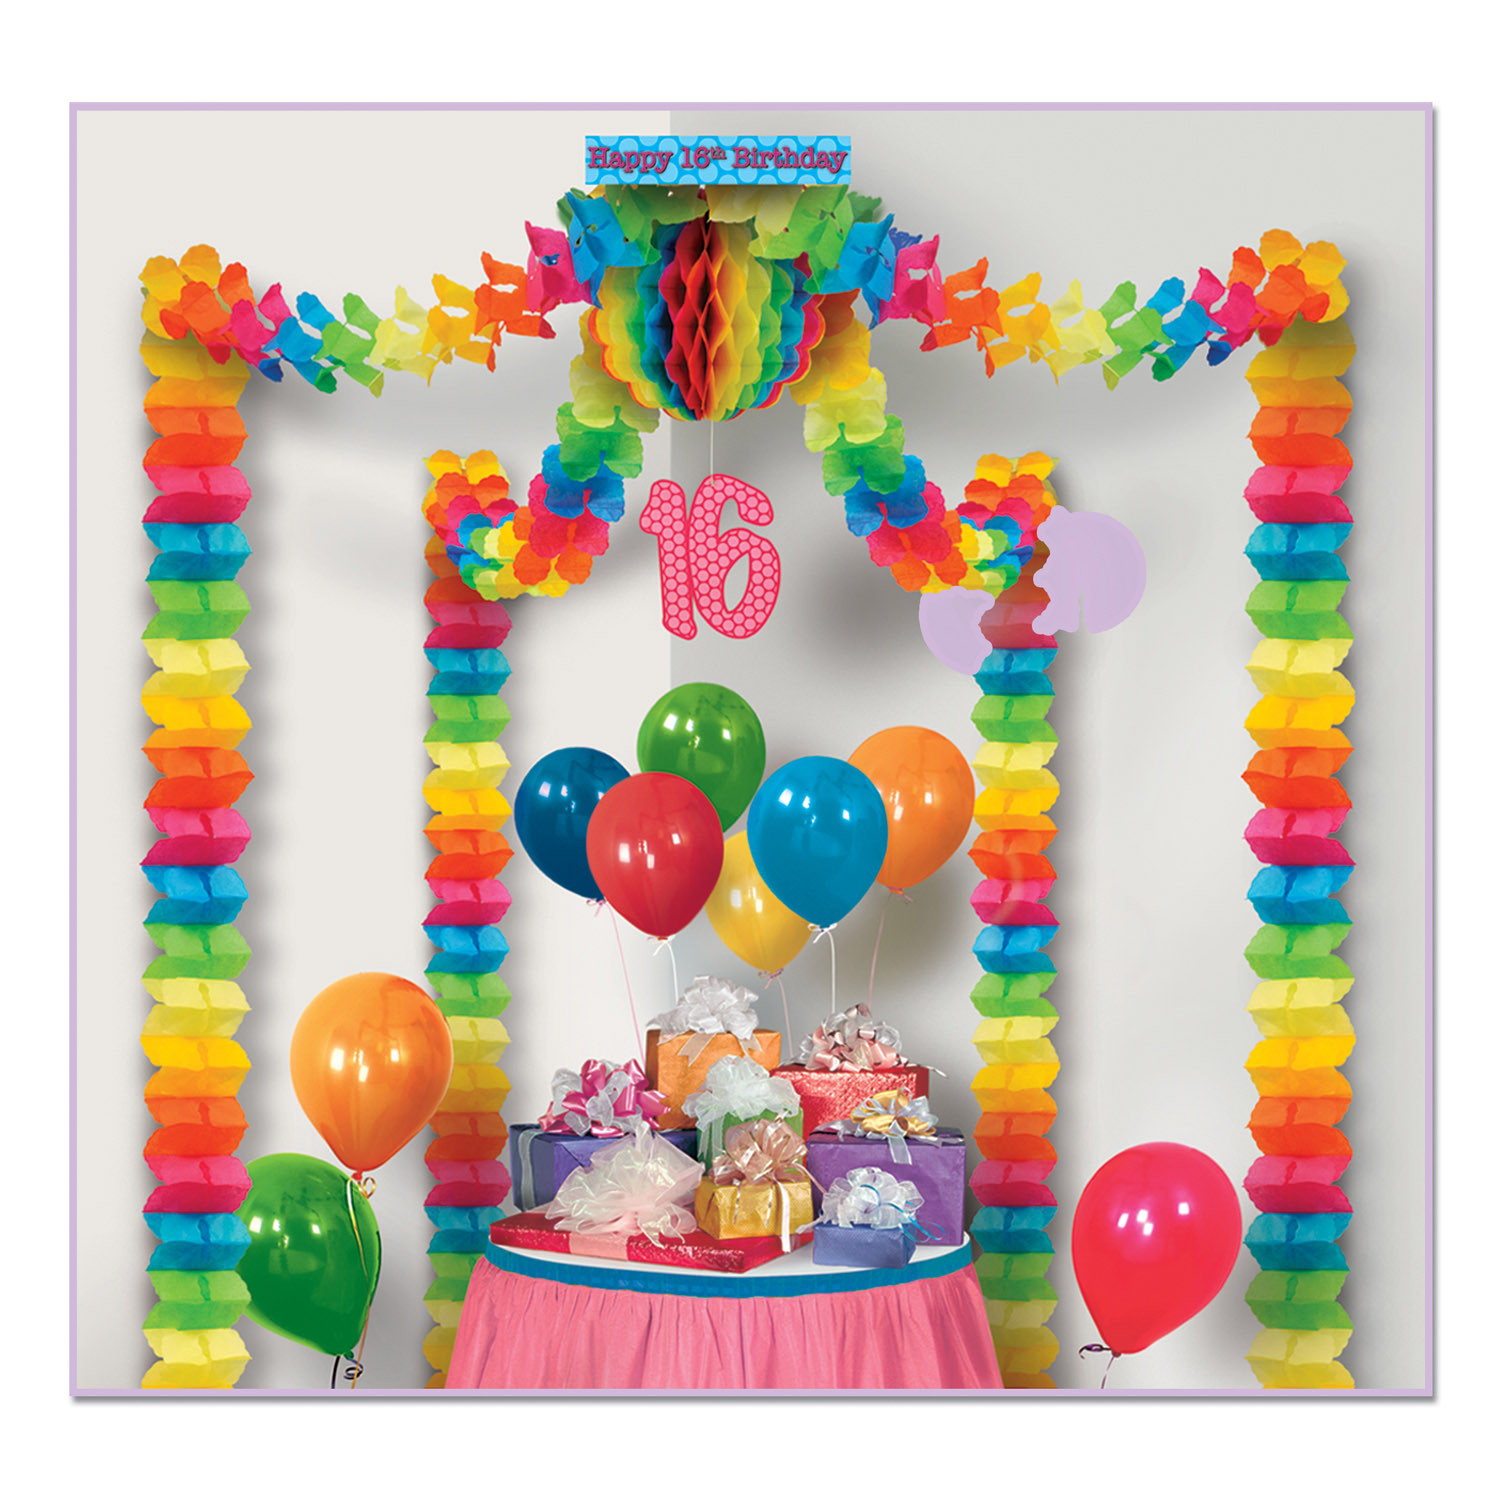 Best ideas about 16th Birthday Party . Save or Pin 16th Birthday Party Canopy Pack of 6 Now.